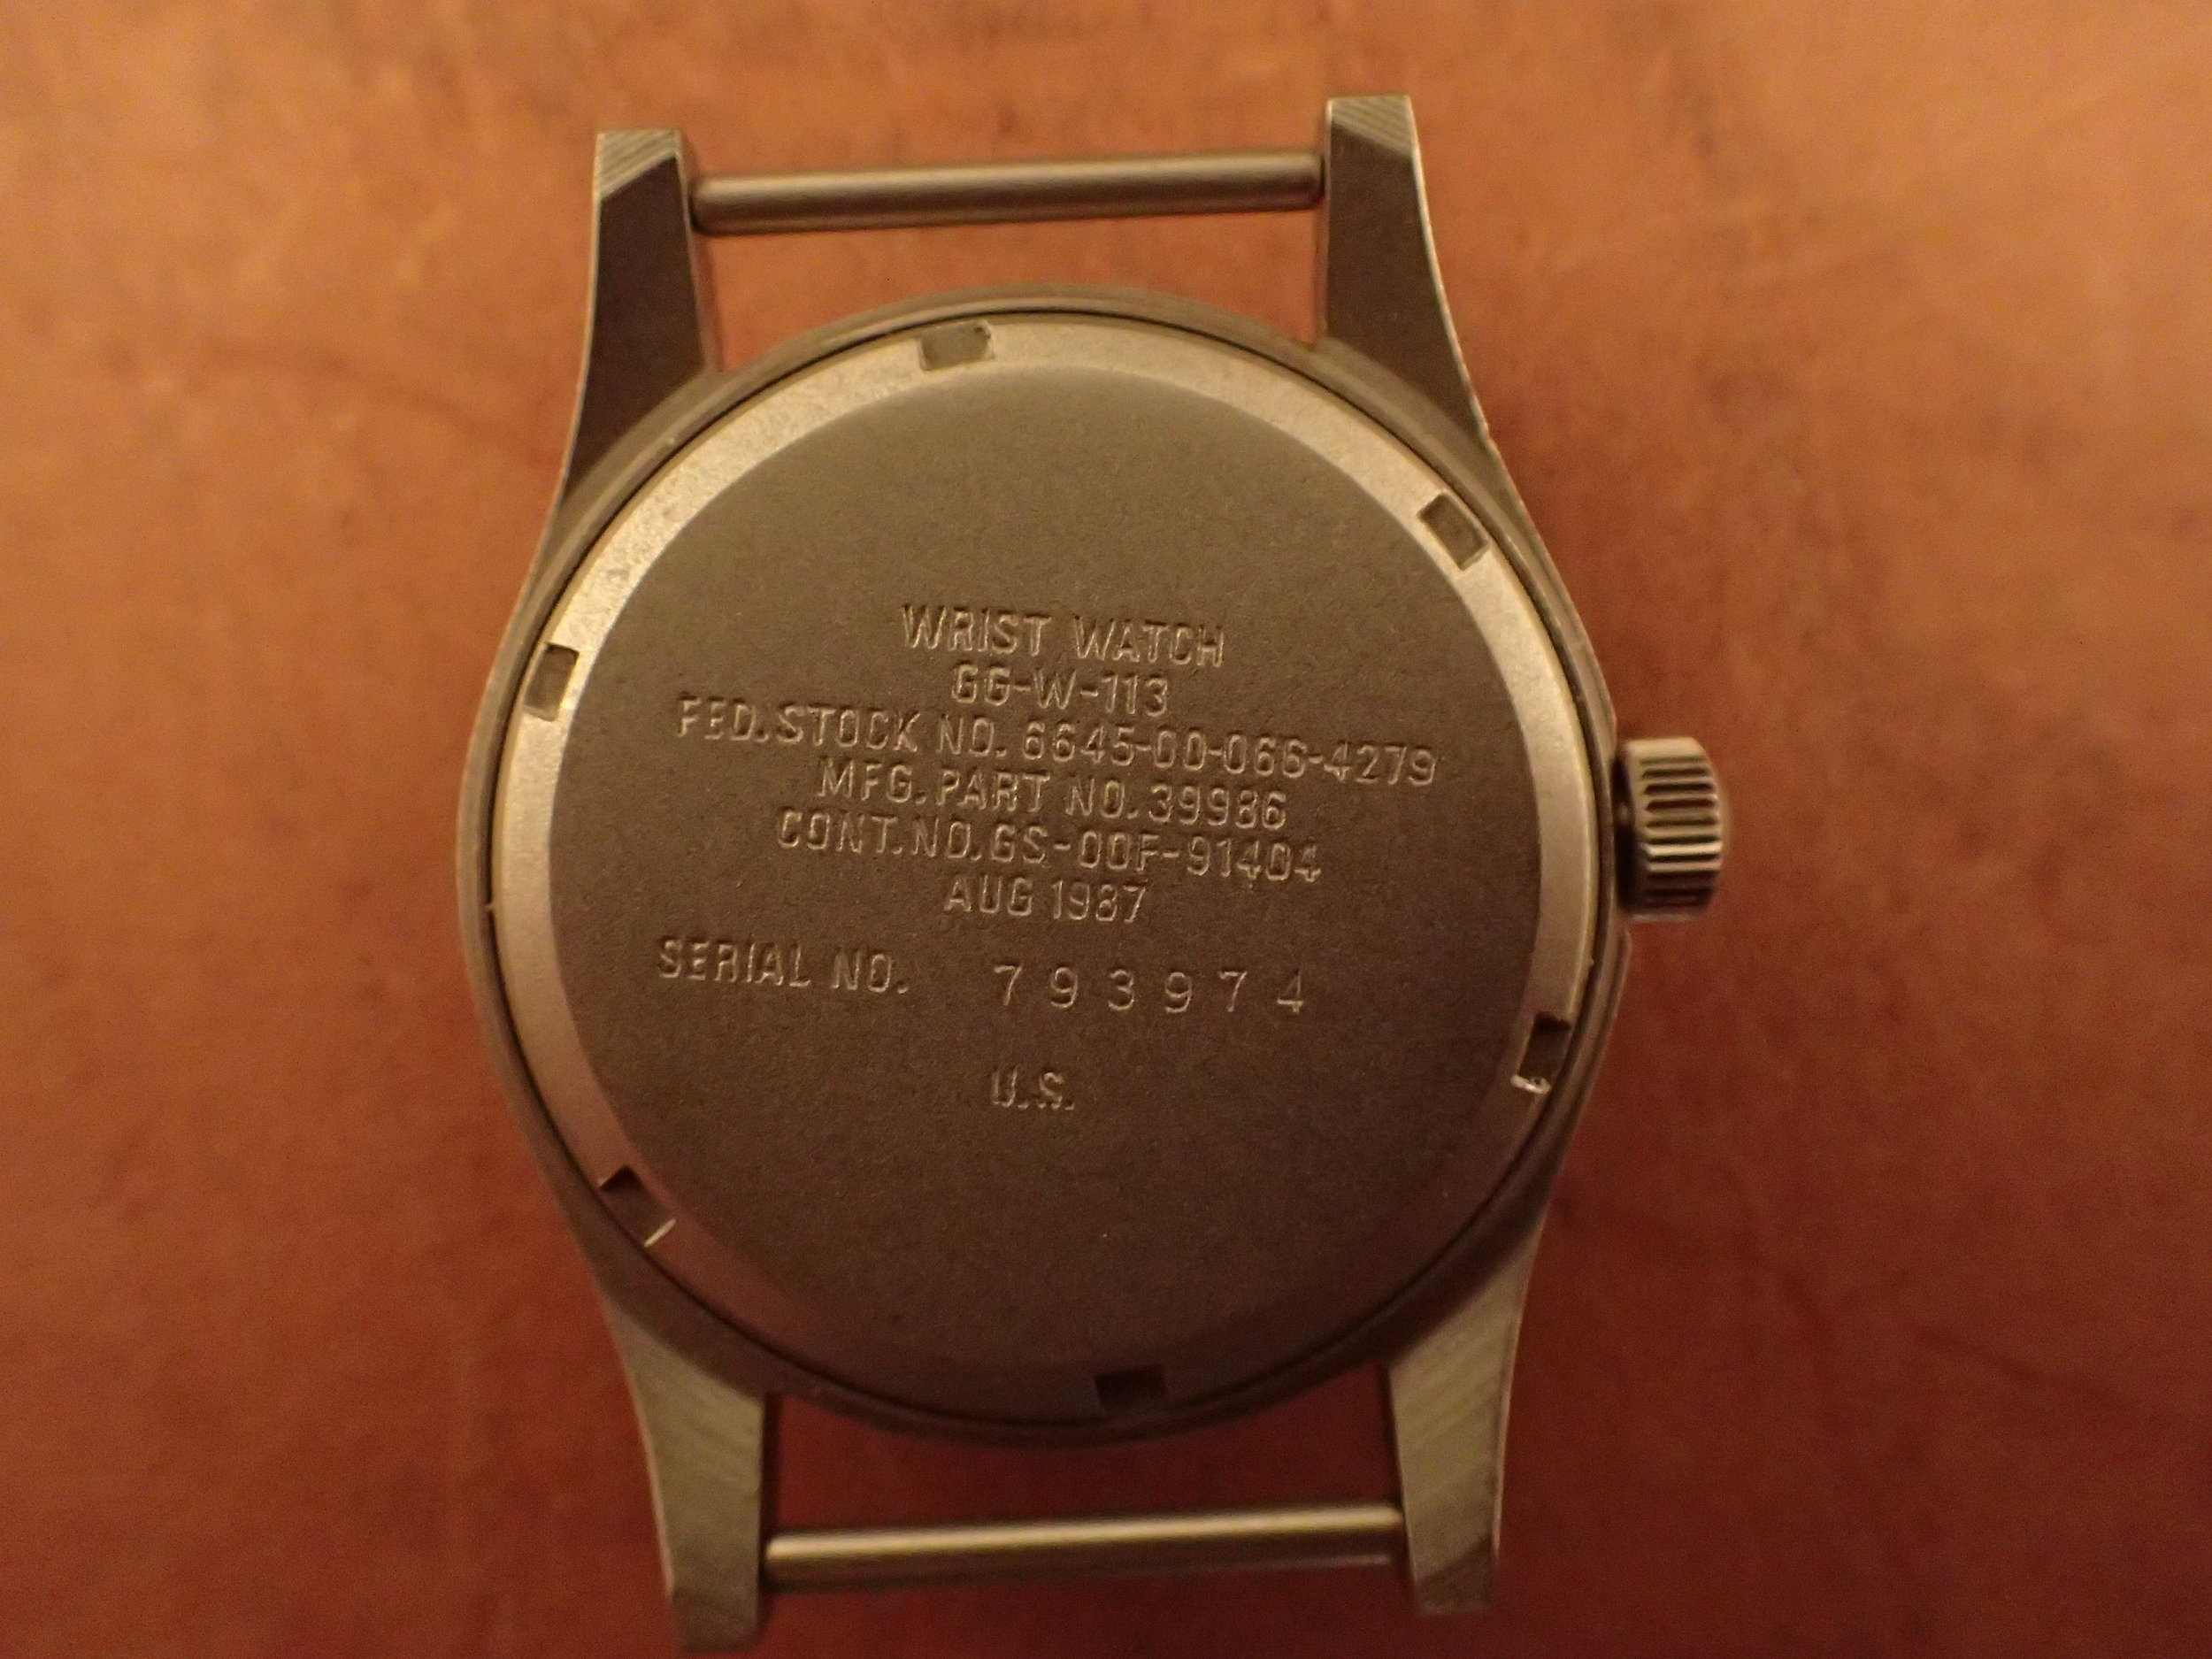 The caseback of the GG-W-113. Note the 00 country code denoting US-issue.